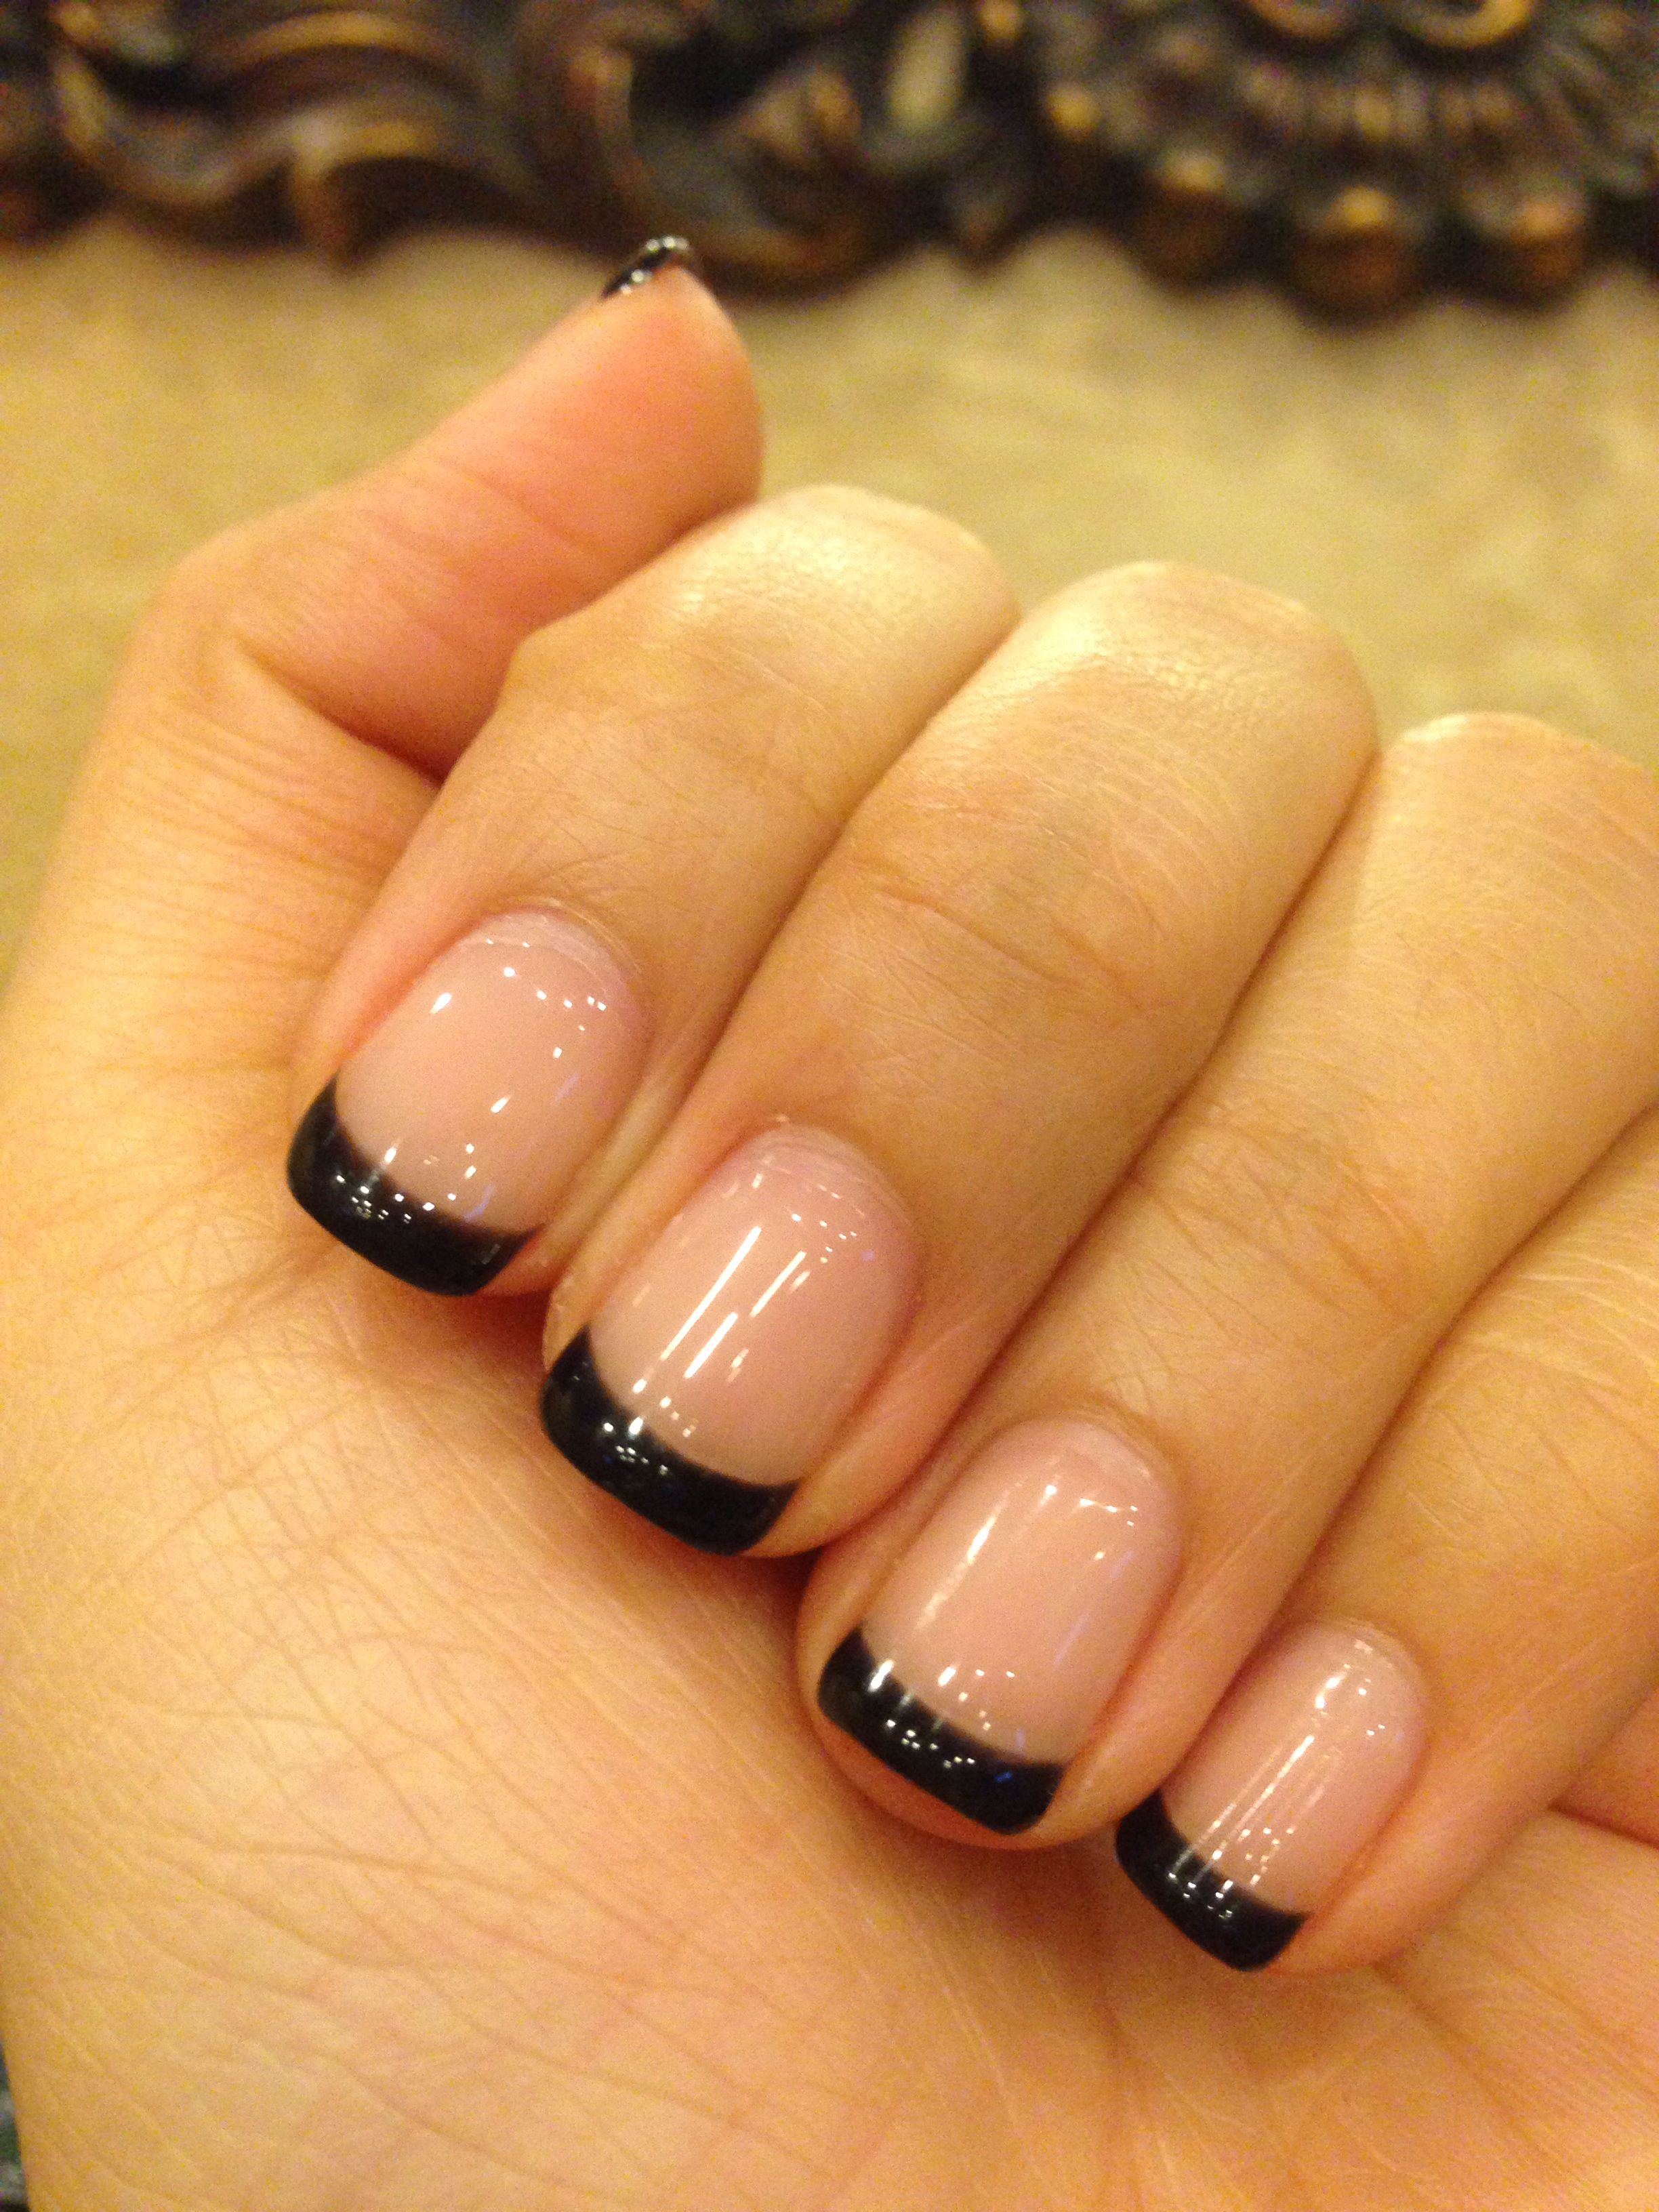 Base With Black French Gel Nails A Great Transition Into Fall